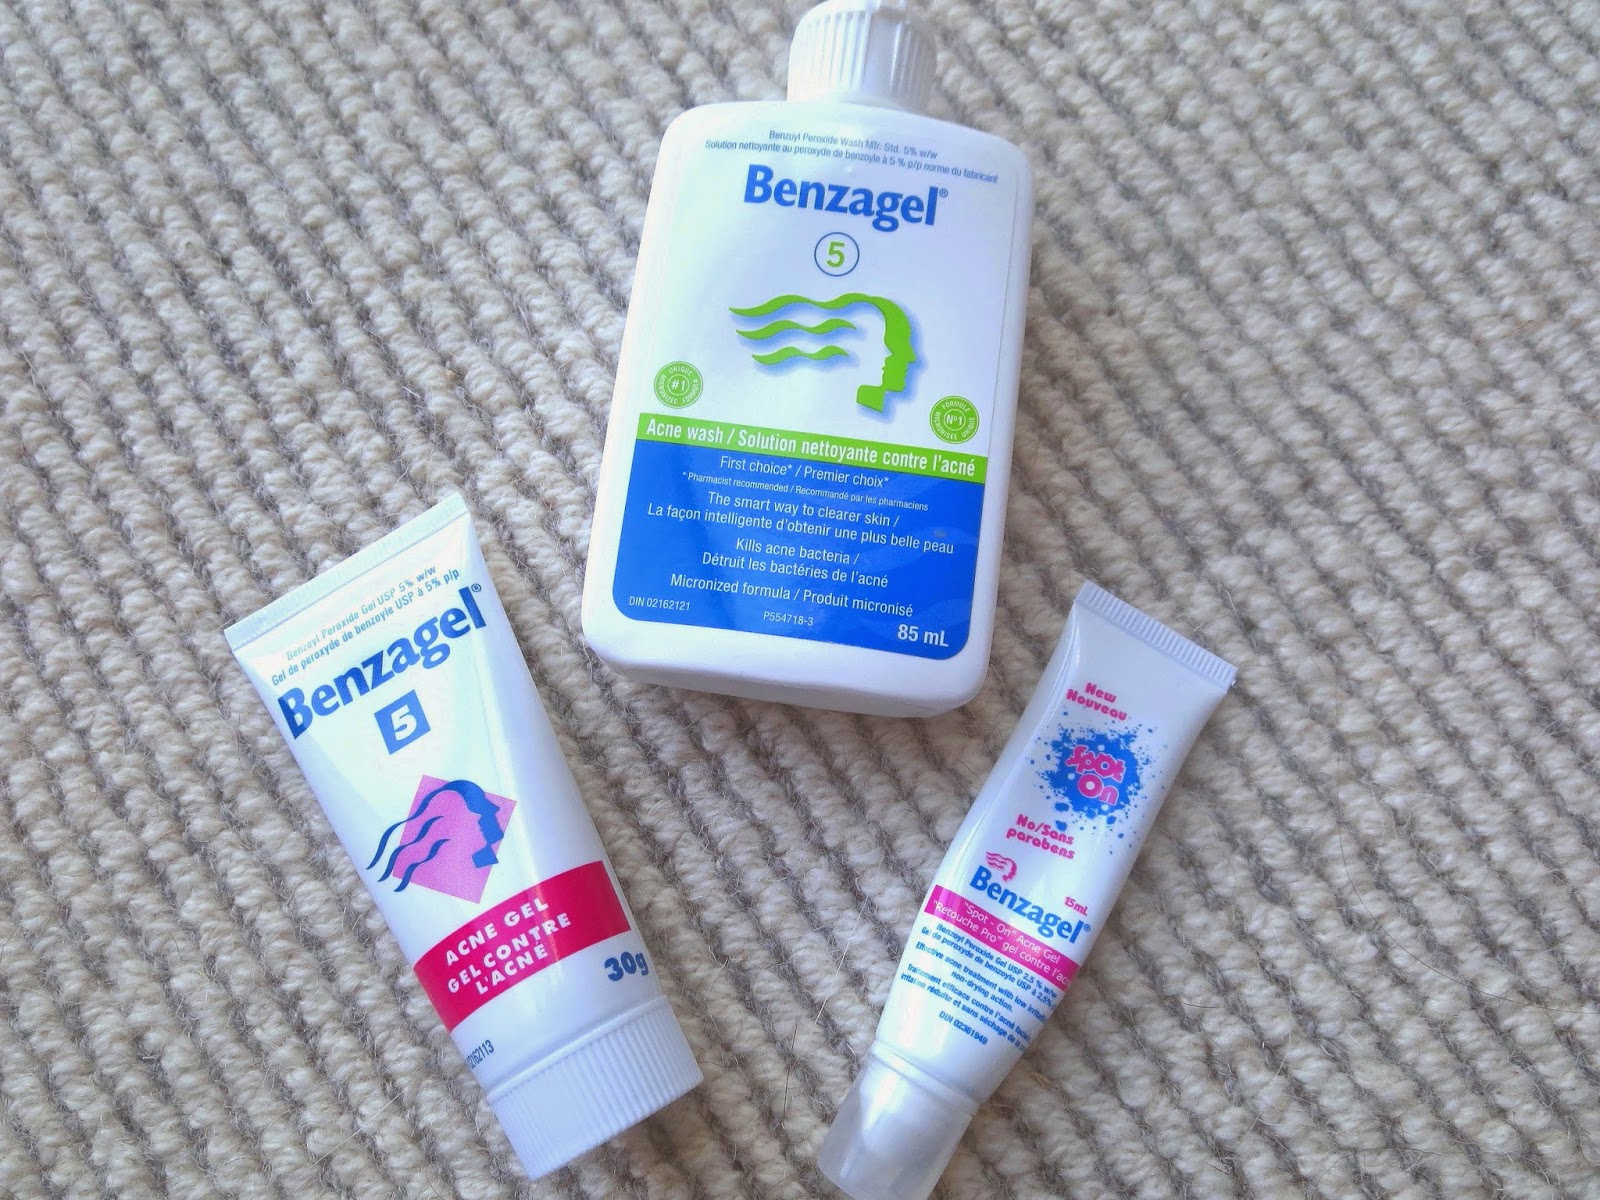 a picture of benzagel 5, benzagel Spot On, Benzagel acne wash